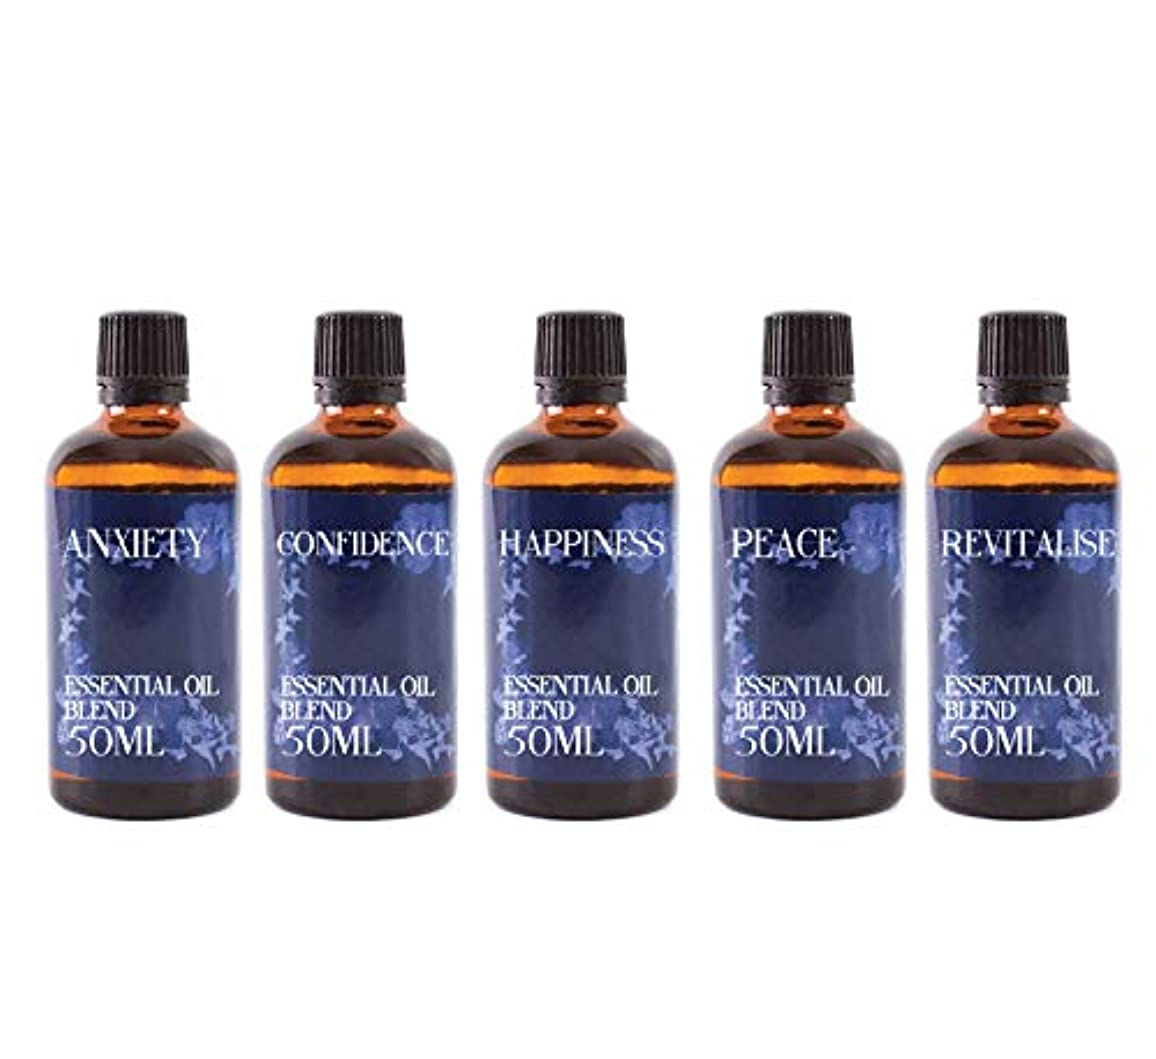 感情優雅な欠点Mystix London | Gift Starter Pack of 5 x 50ml - Mental Wellbeing - Essential Oil Blends